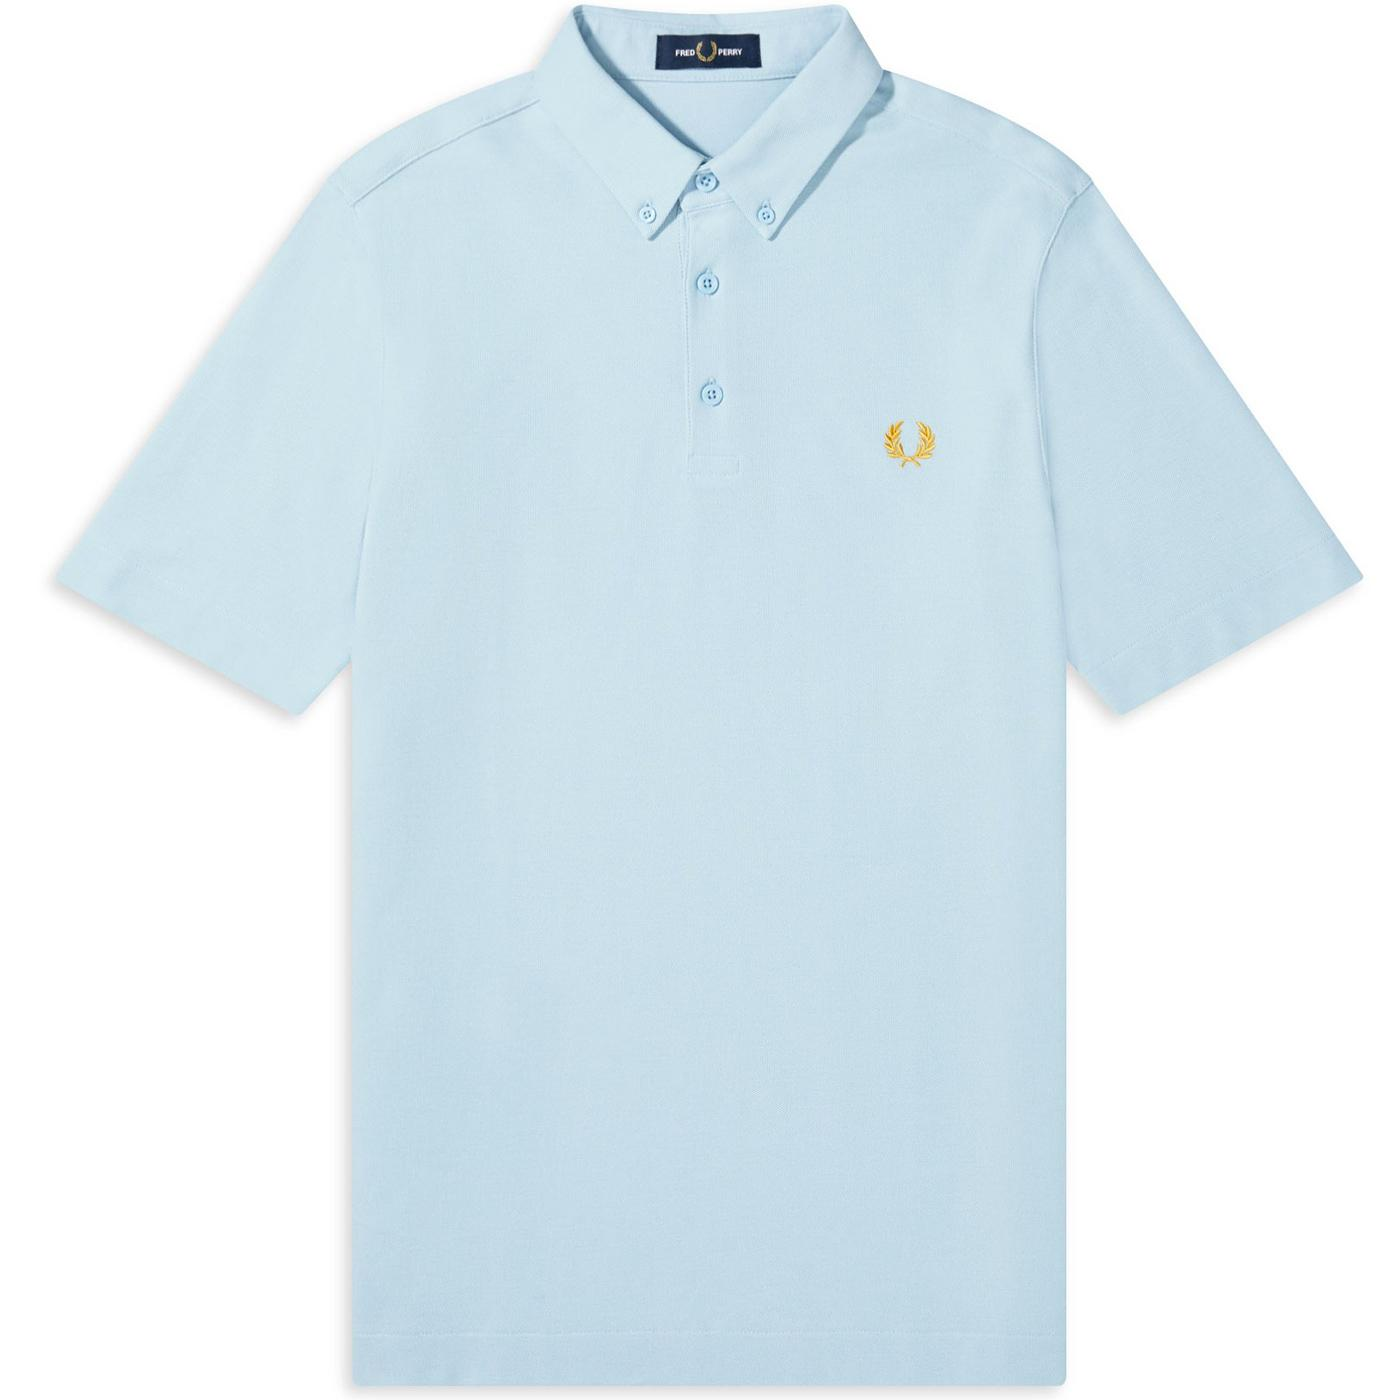 FRED PERRY M8543 Button Down Pique Polo Top (IB)